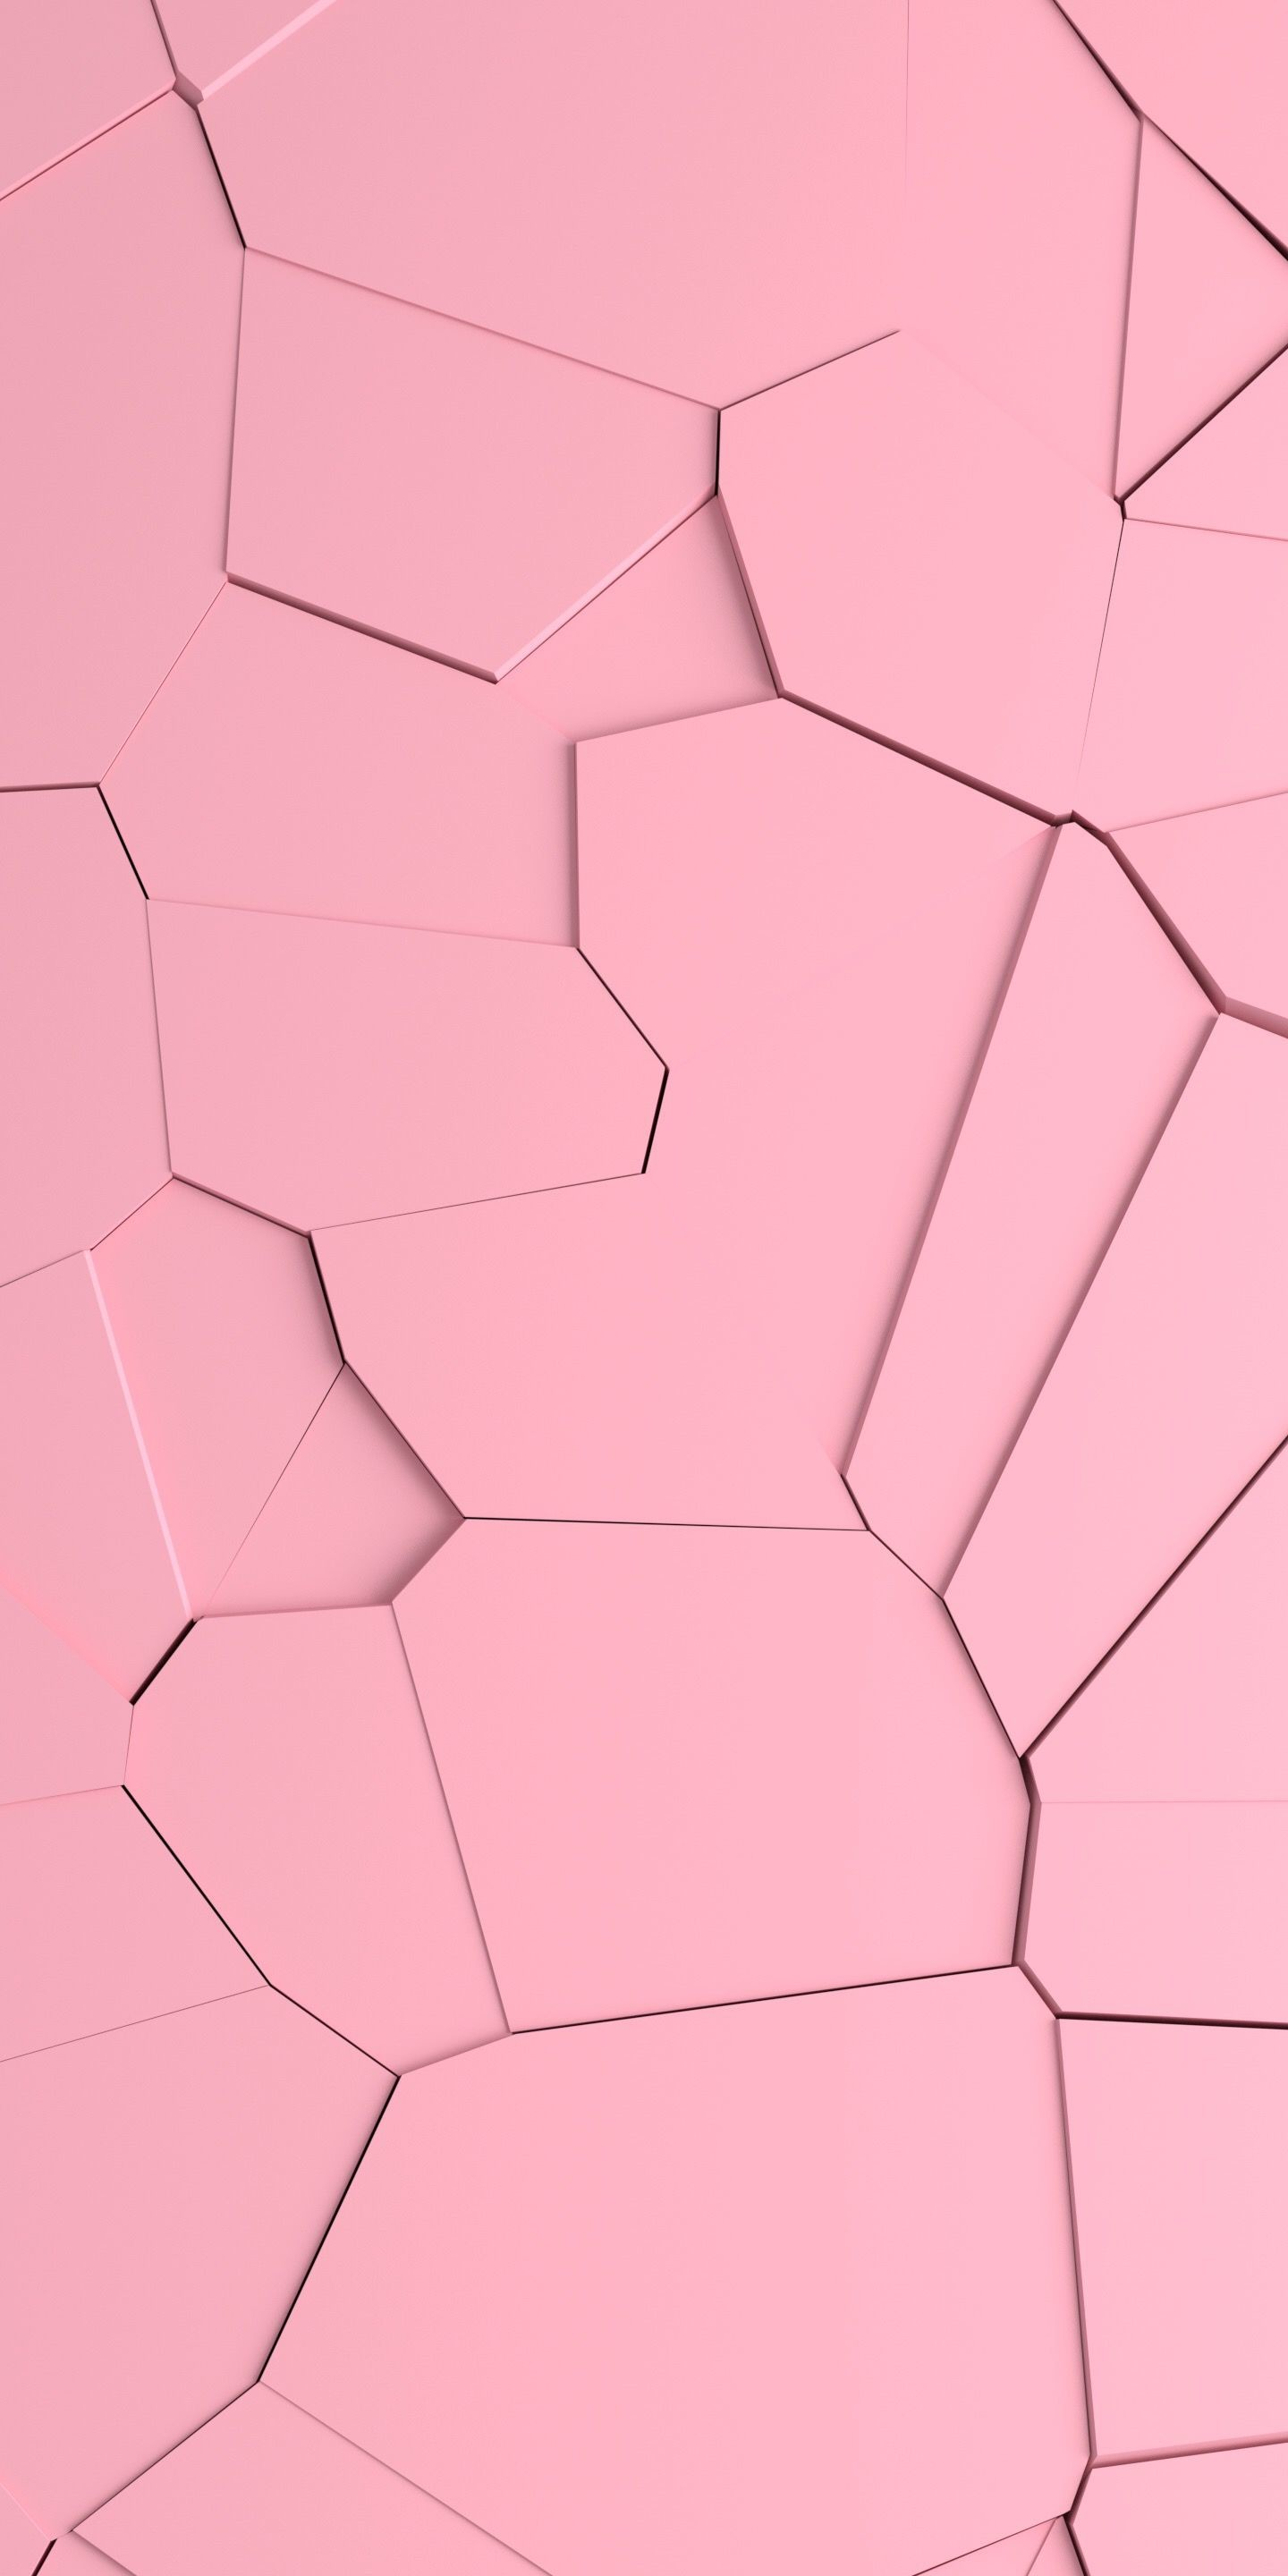 Res: 1440x2880, wallpapers for android and iphone, download geometric pink phone background